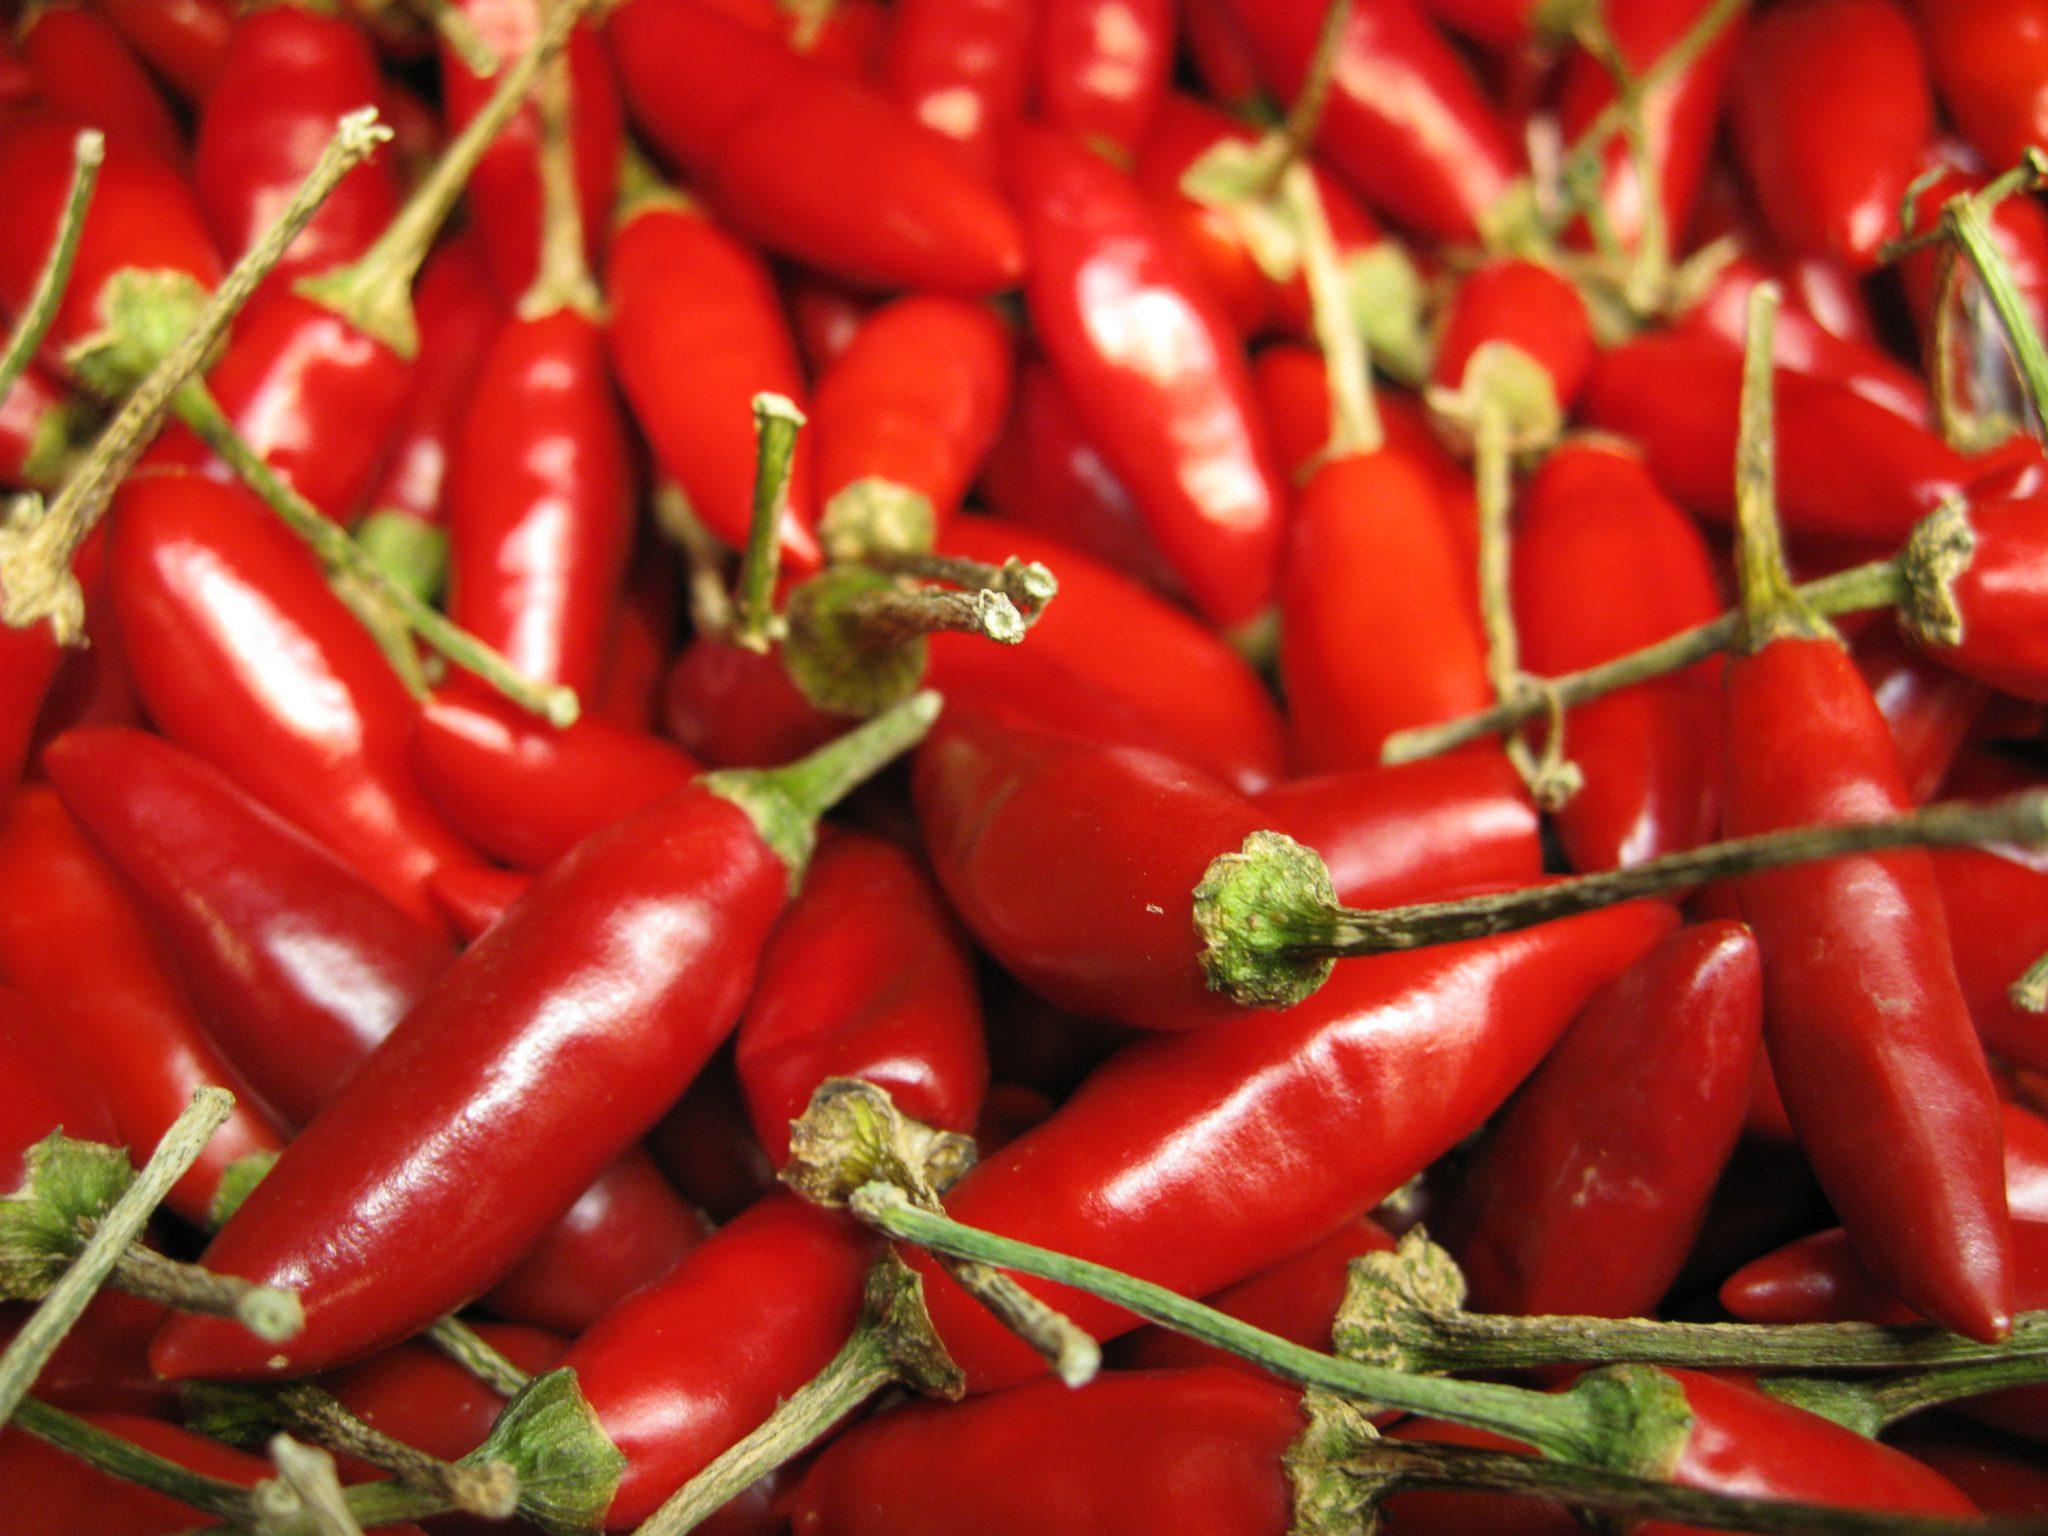 People in Mexico Were Using Chili Peppers to Make Spicy Drinks 2400 Years Ago